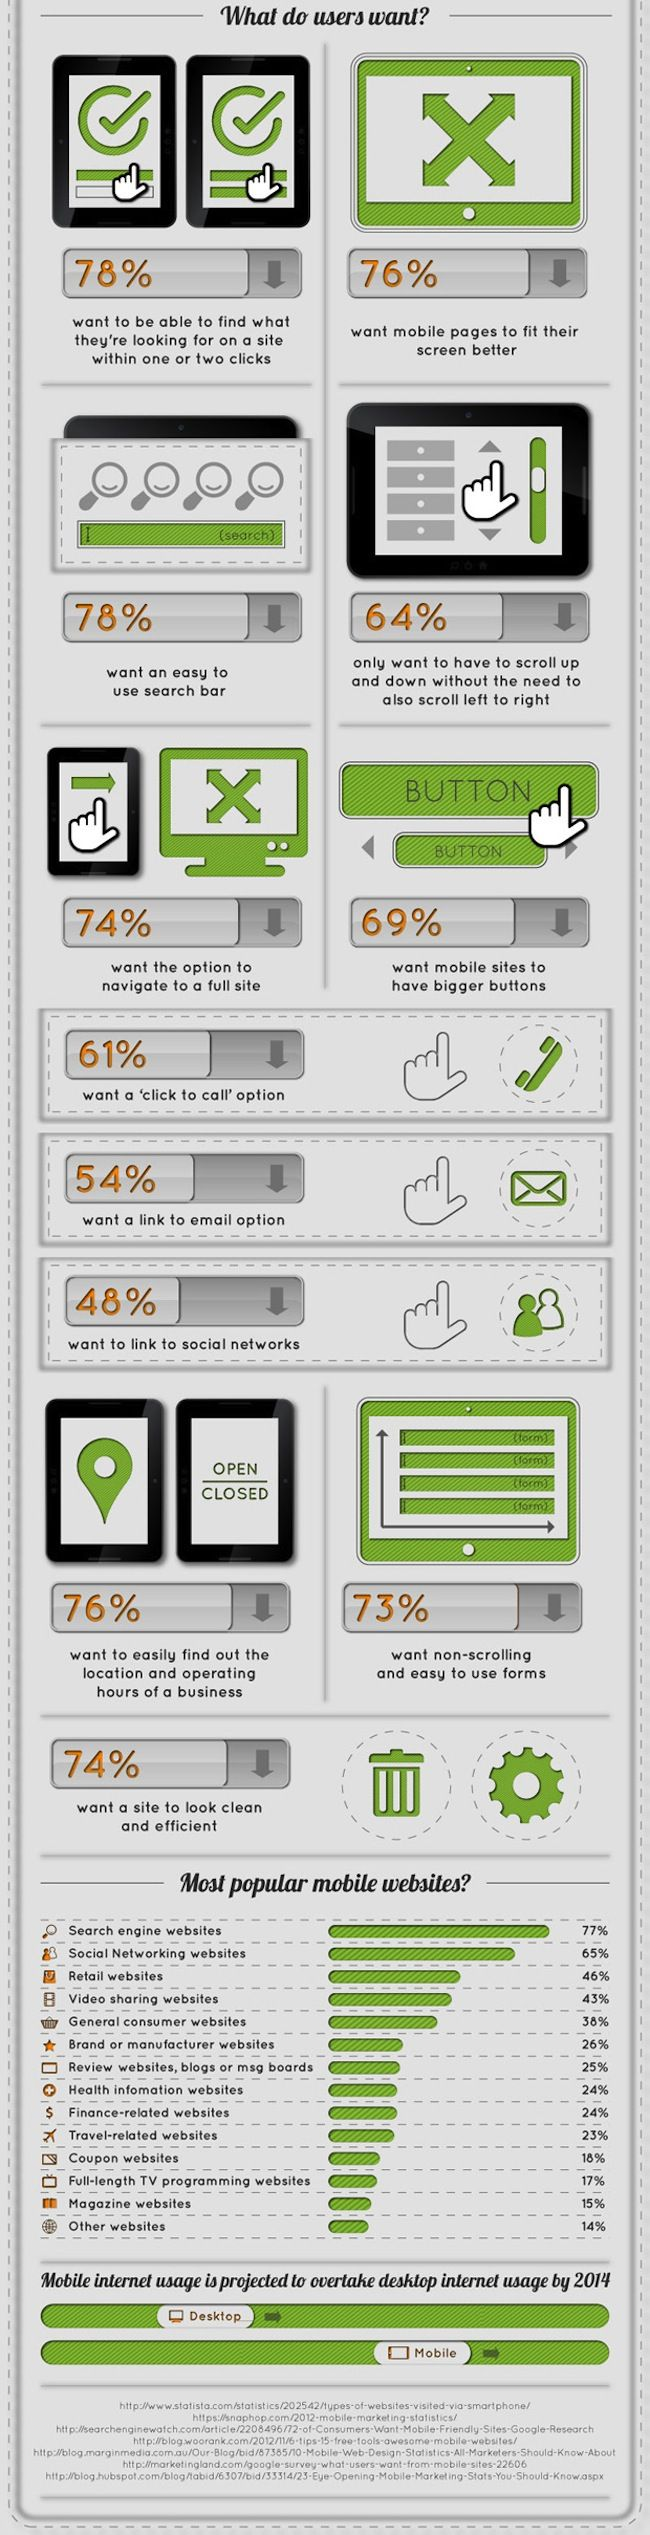 What do users want #UX #UI #UCD